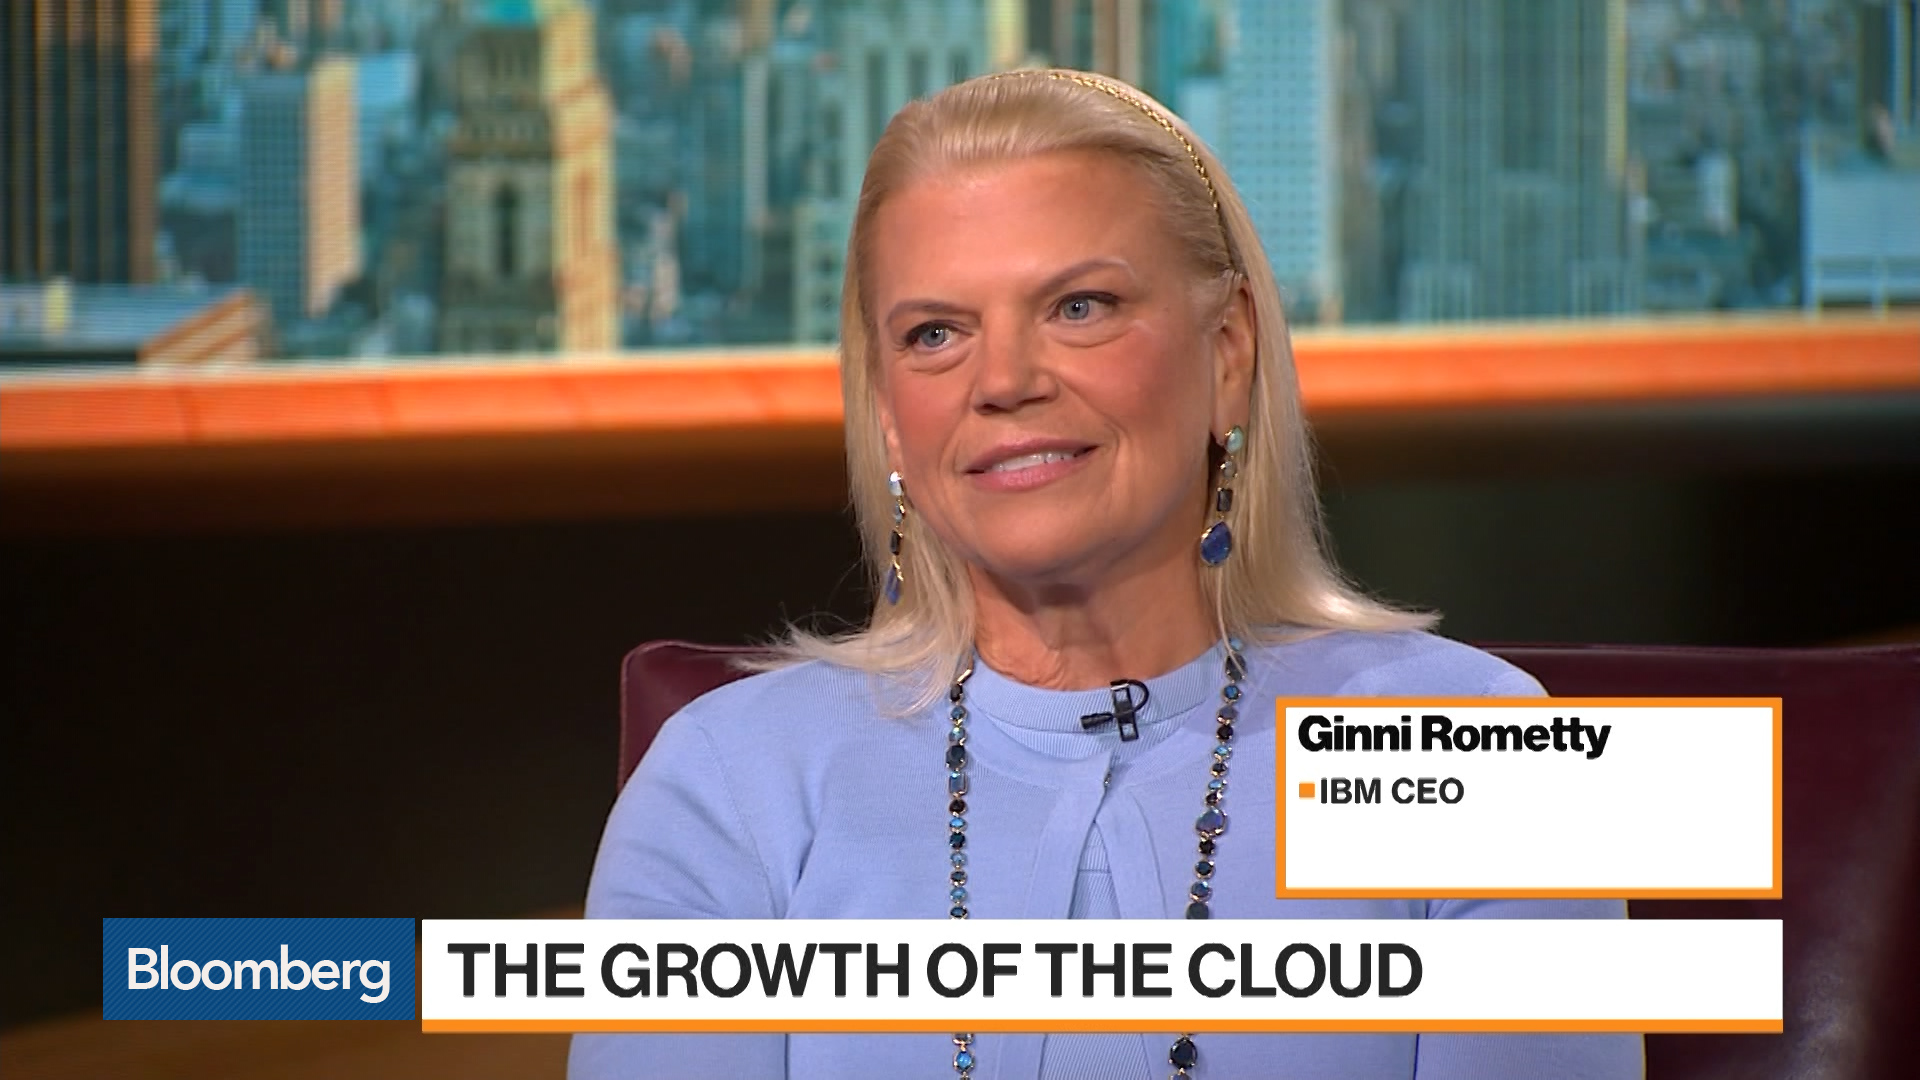 IBM CEO Sees Amazon and Microsoft Are Cloud Allies: Ginni Rometty